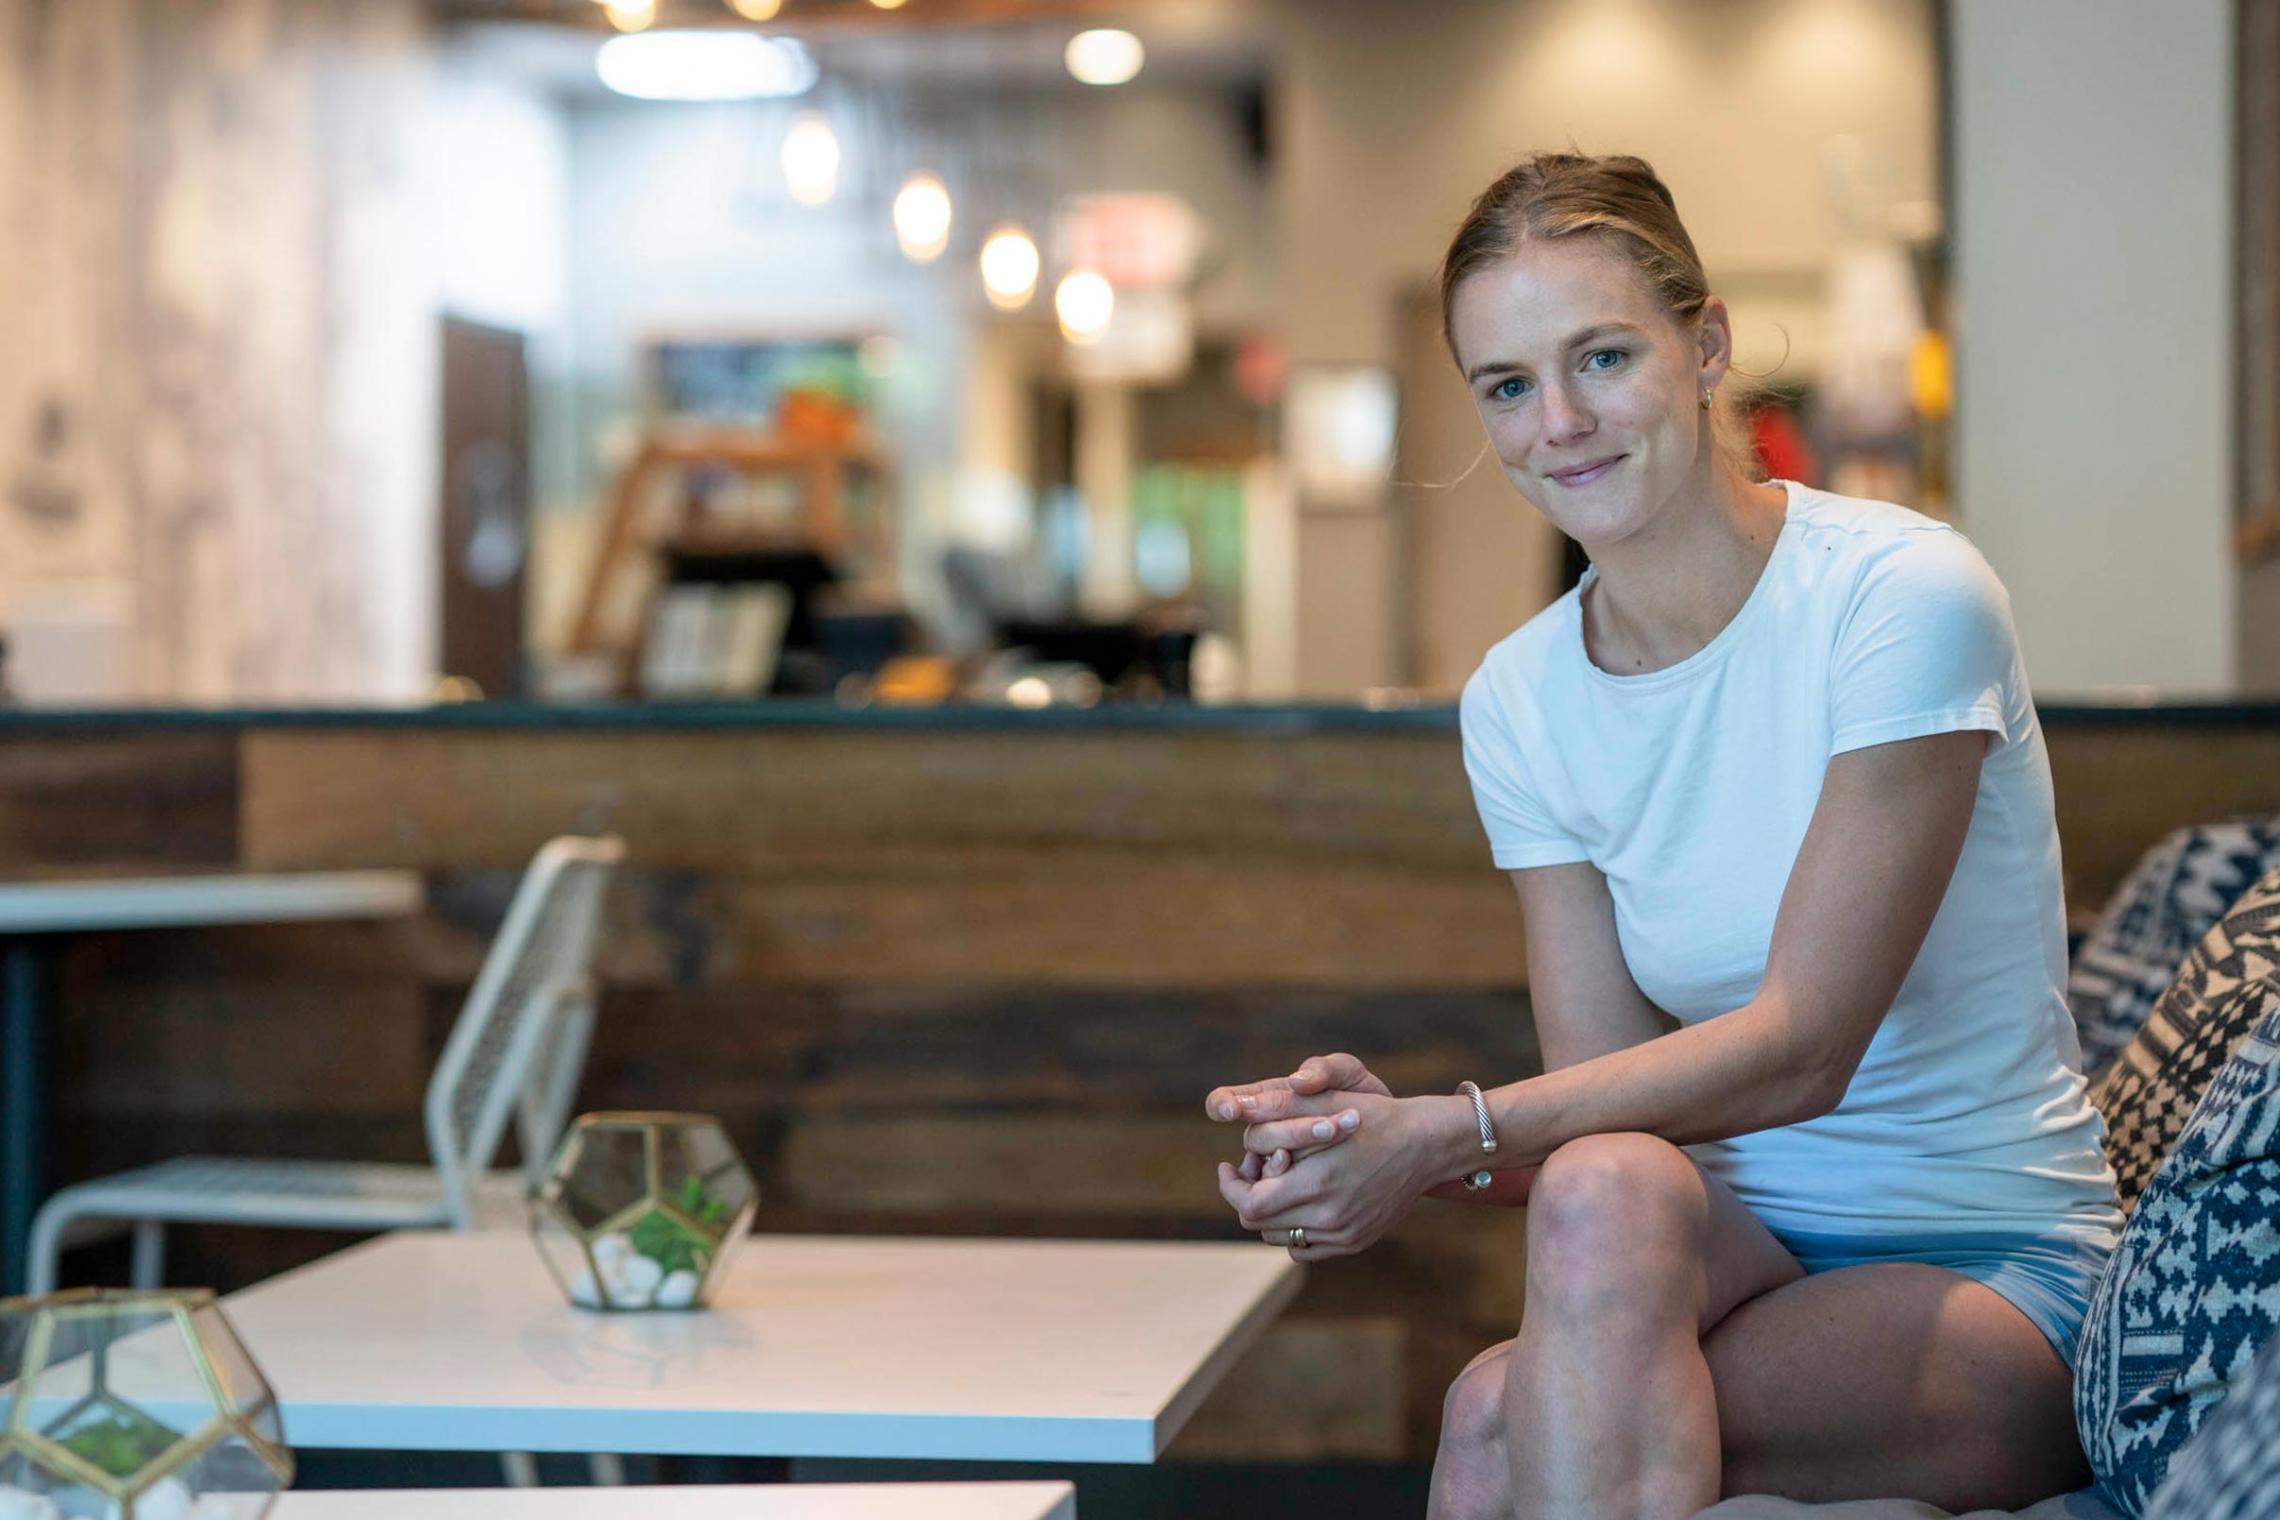 Julie Nolet, a 2017 graduate of the University, created Corner Juice in collaboration with her business partners Joseph Linzon and Kevin McConnell.